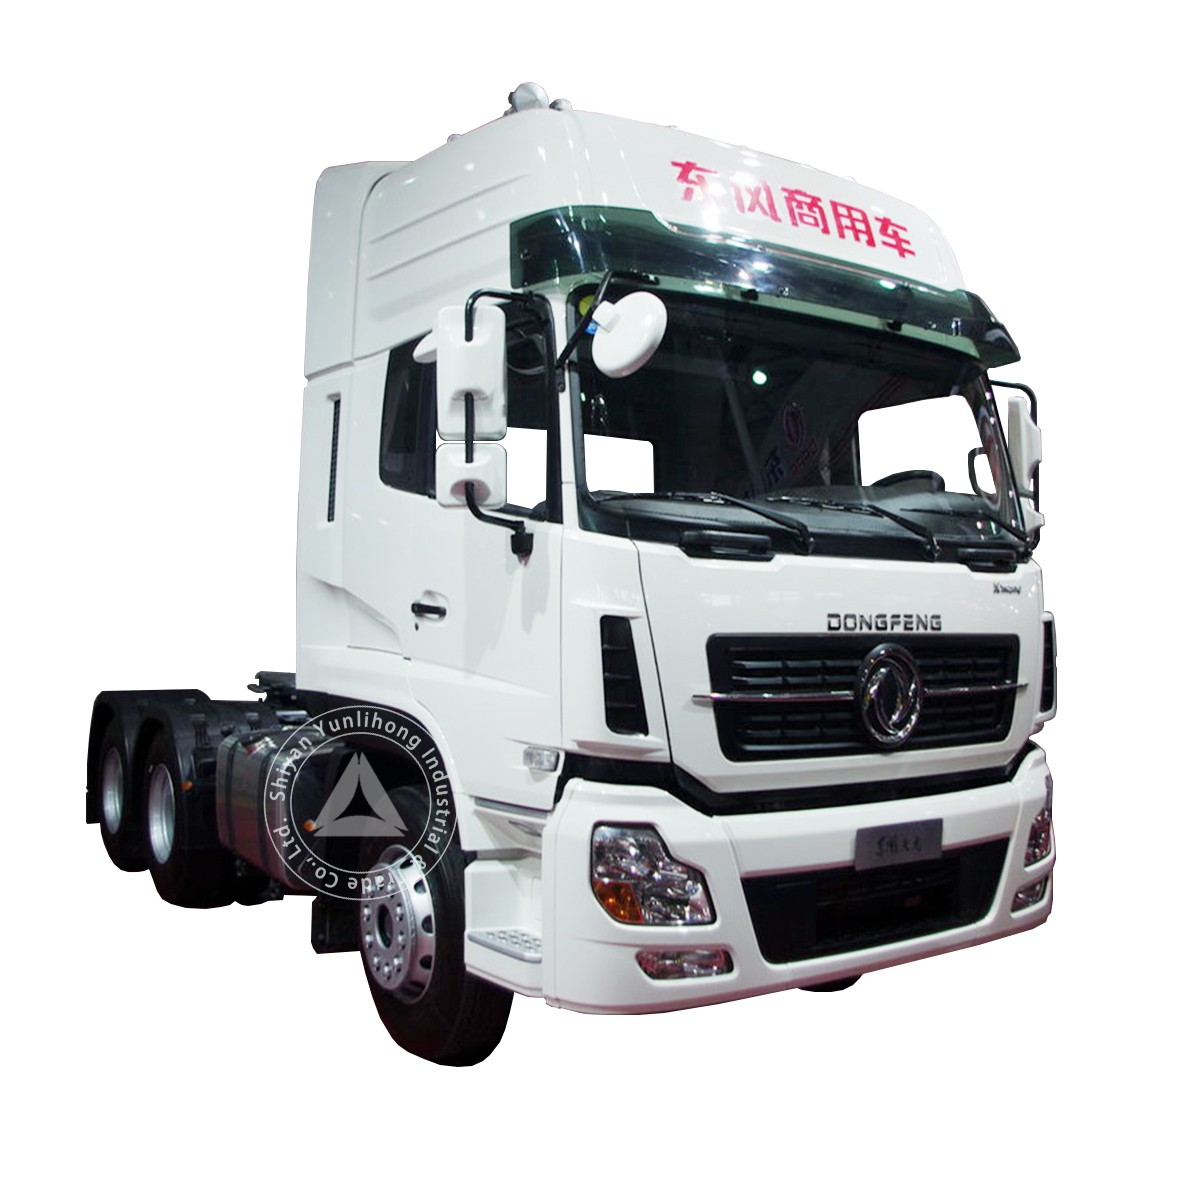 Dongfeng KL 400hp 6x4 Tractor Truck Manufacturers, Dongfeng KL 400hp 6x4 Tractor Truck Factory, Supply Dongfeng KL 400hp 6x4 Tractor Truck